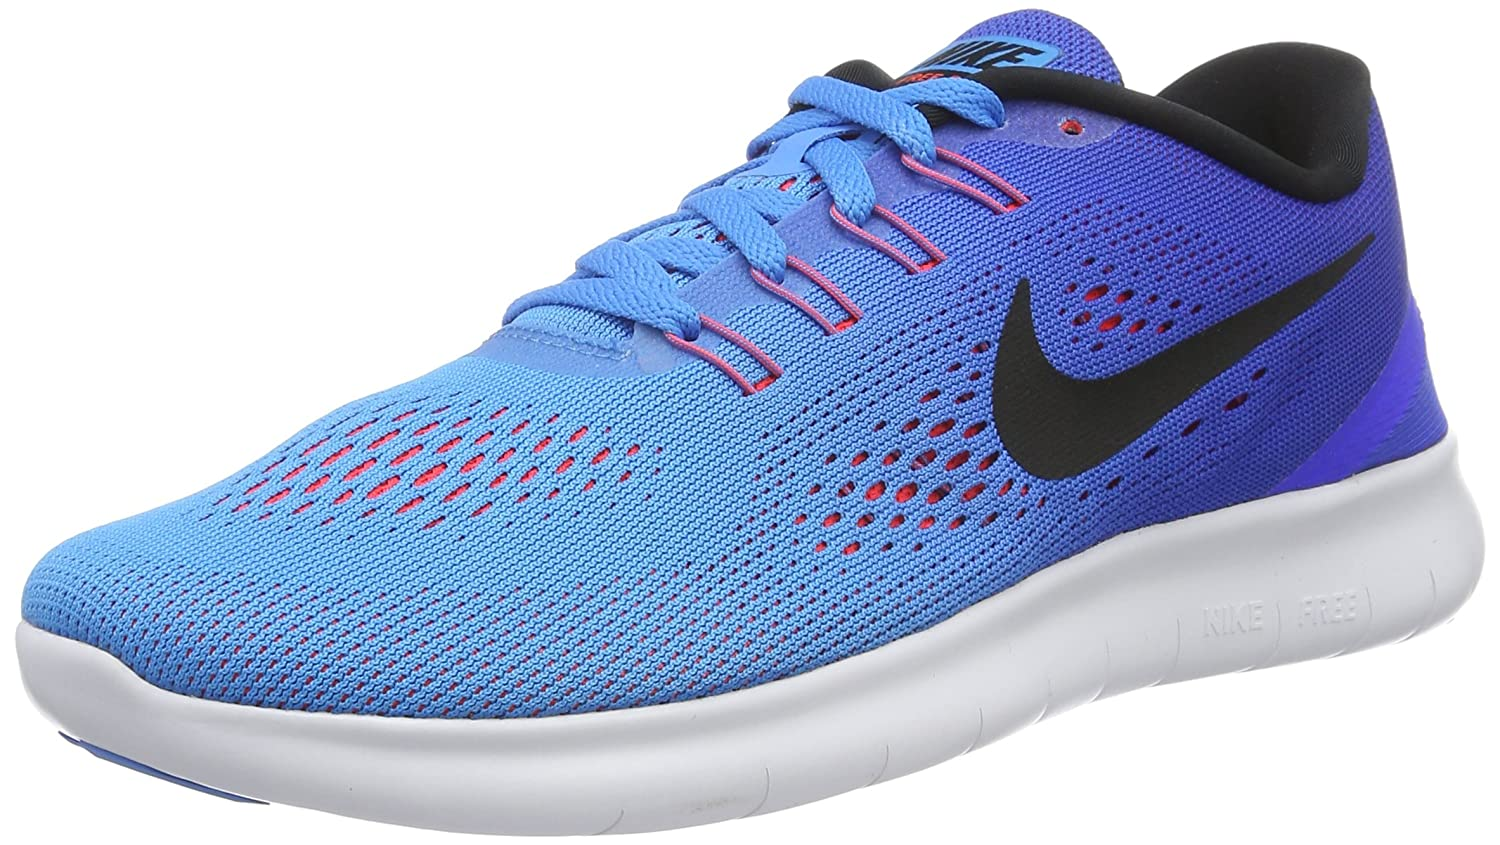 NIKE Men's Free RN Running Shoe B019DGZMEA 10 D(M) US|Blue Glow/Black/Racer Blue